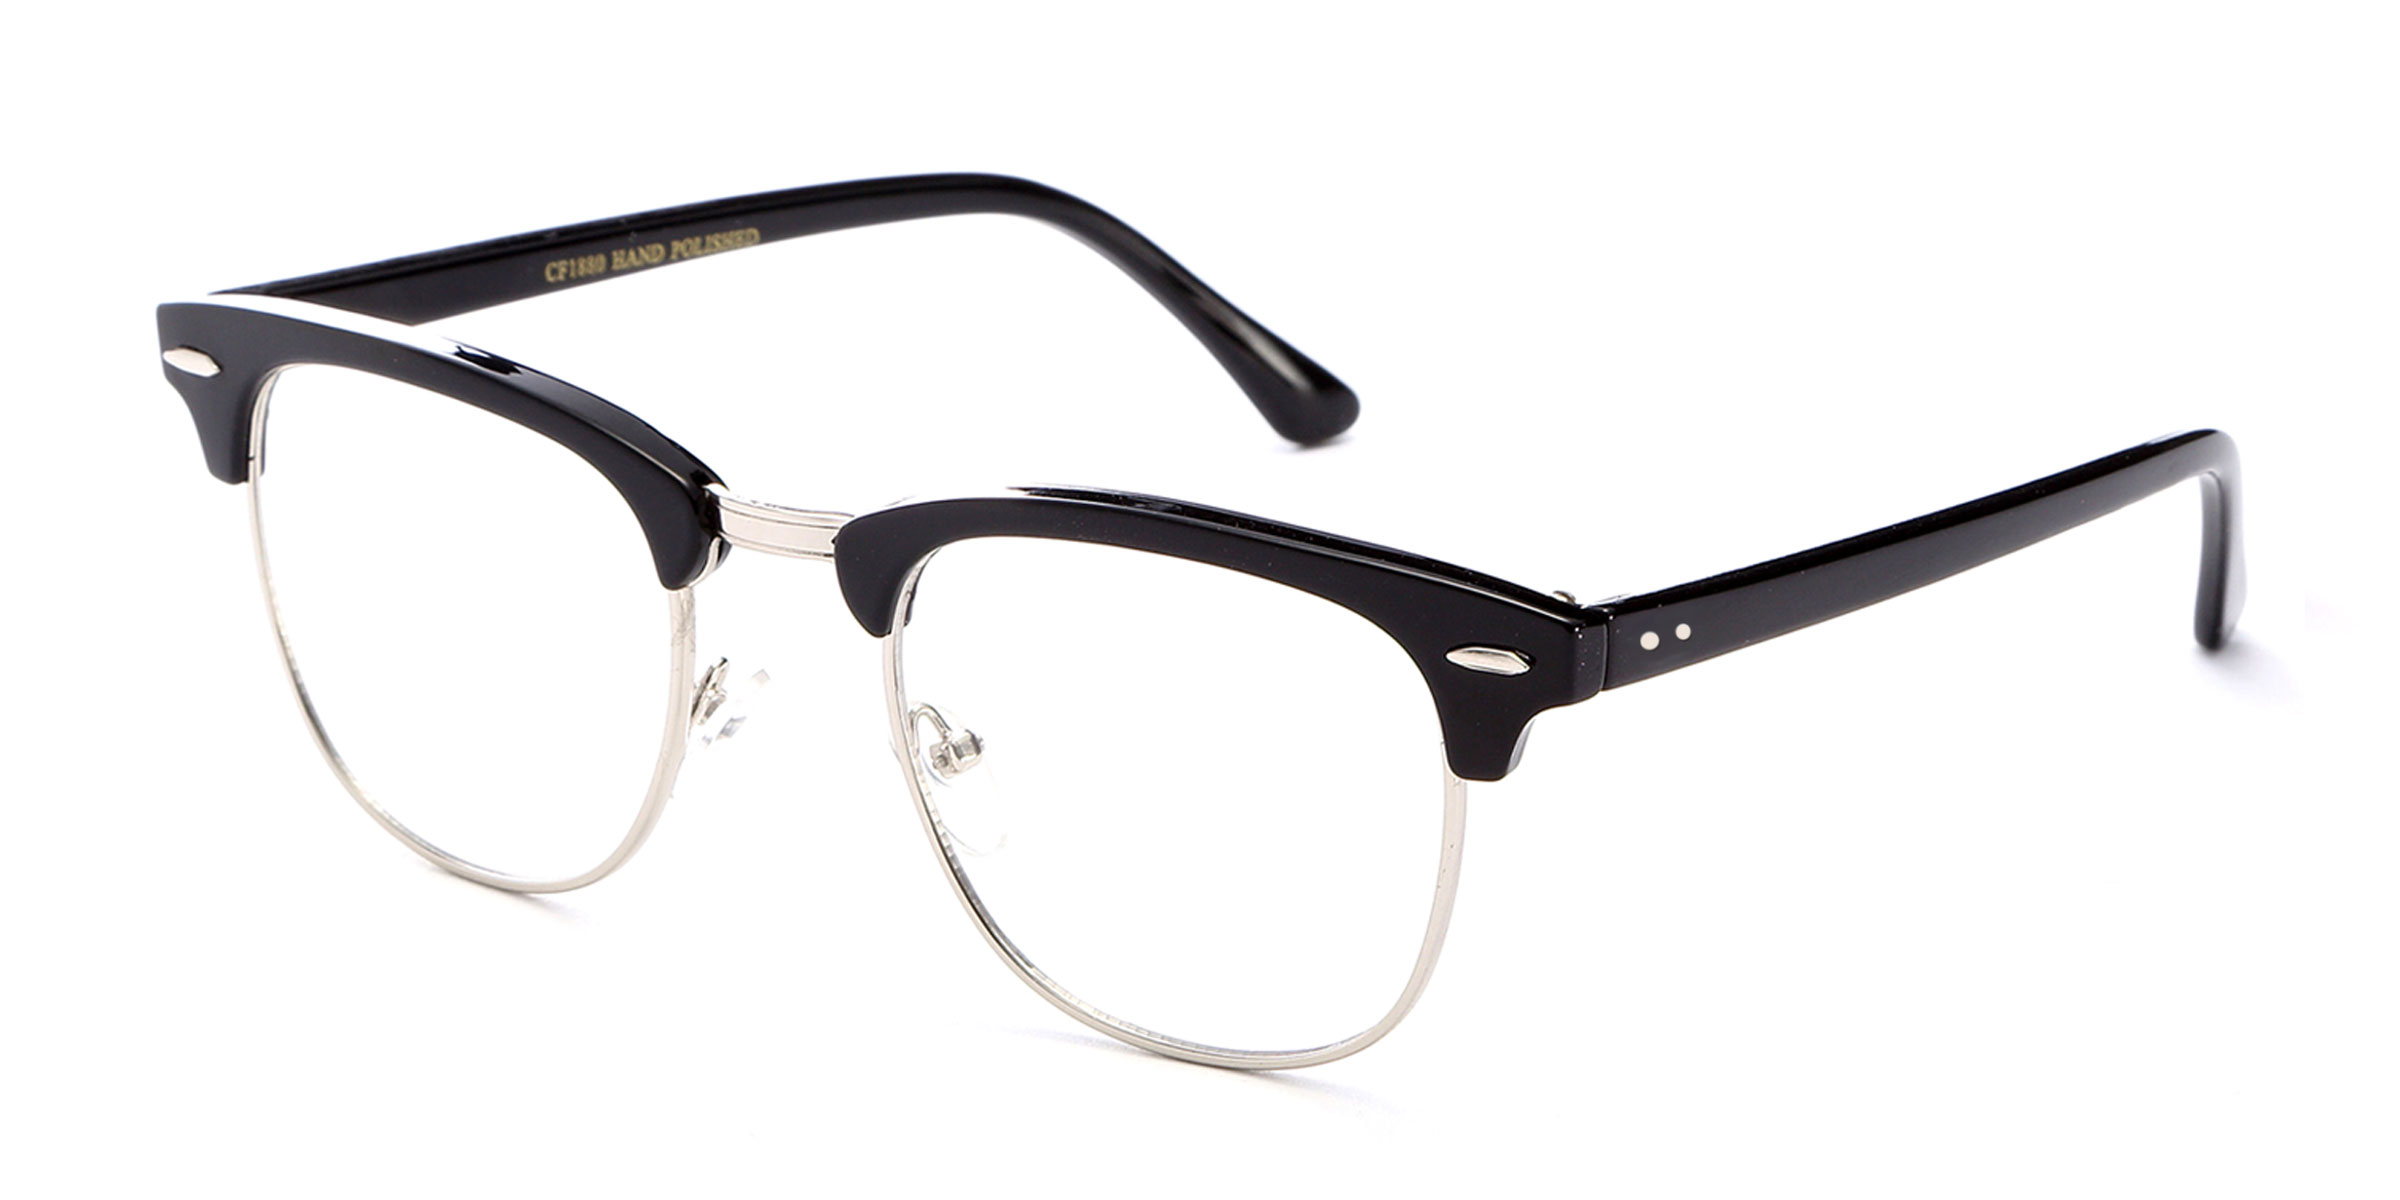 Vintage Style Nerdy Half Frame Reading Glasses with Metal ...